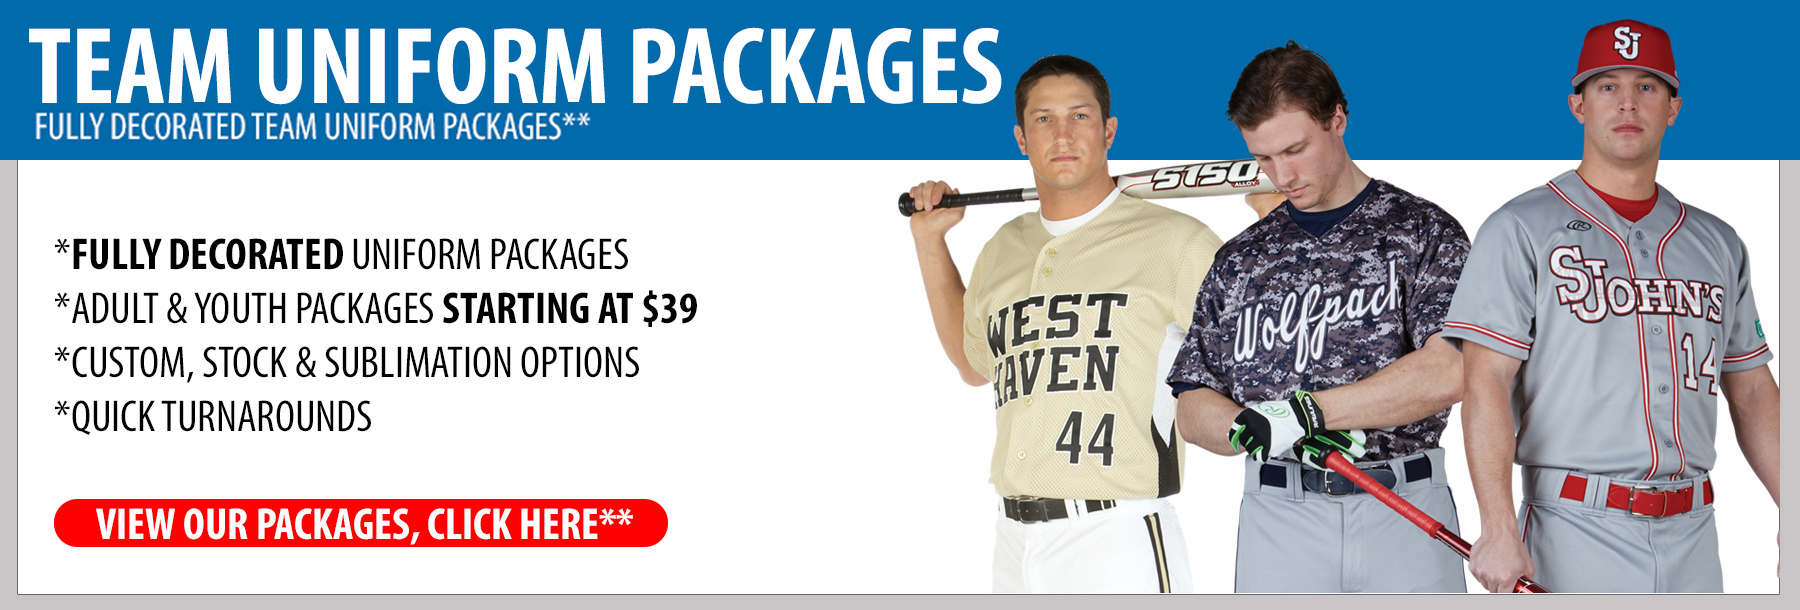 Baseball Team Uniform Packages - Baseball Team Uniforms - Adult Baseball Uniforms - Camo Baseball Uniforms - Youth Baseball Uniforms